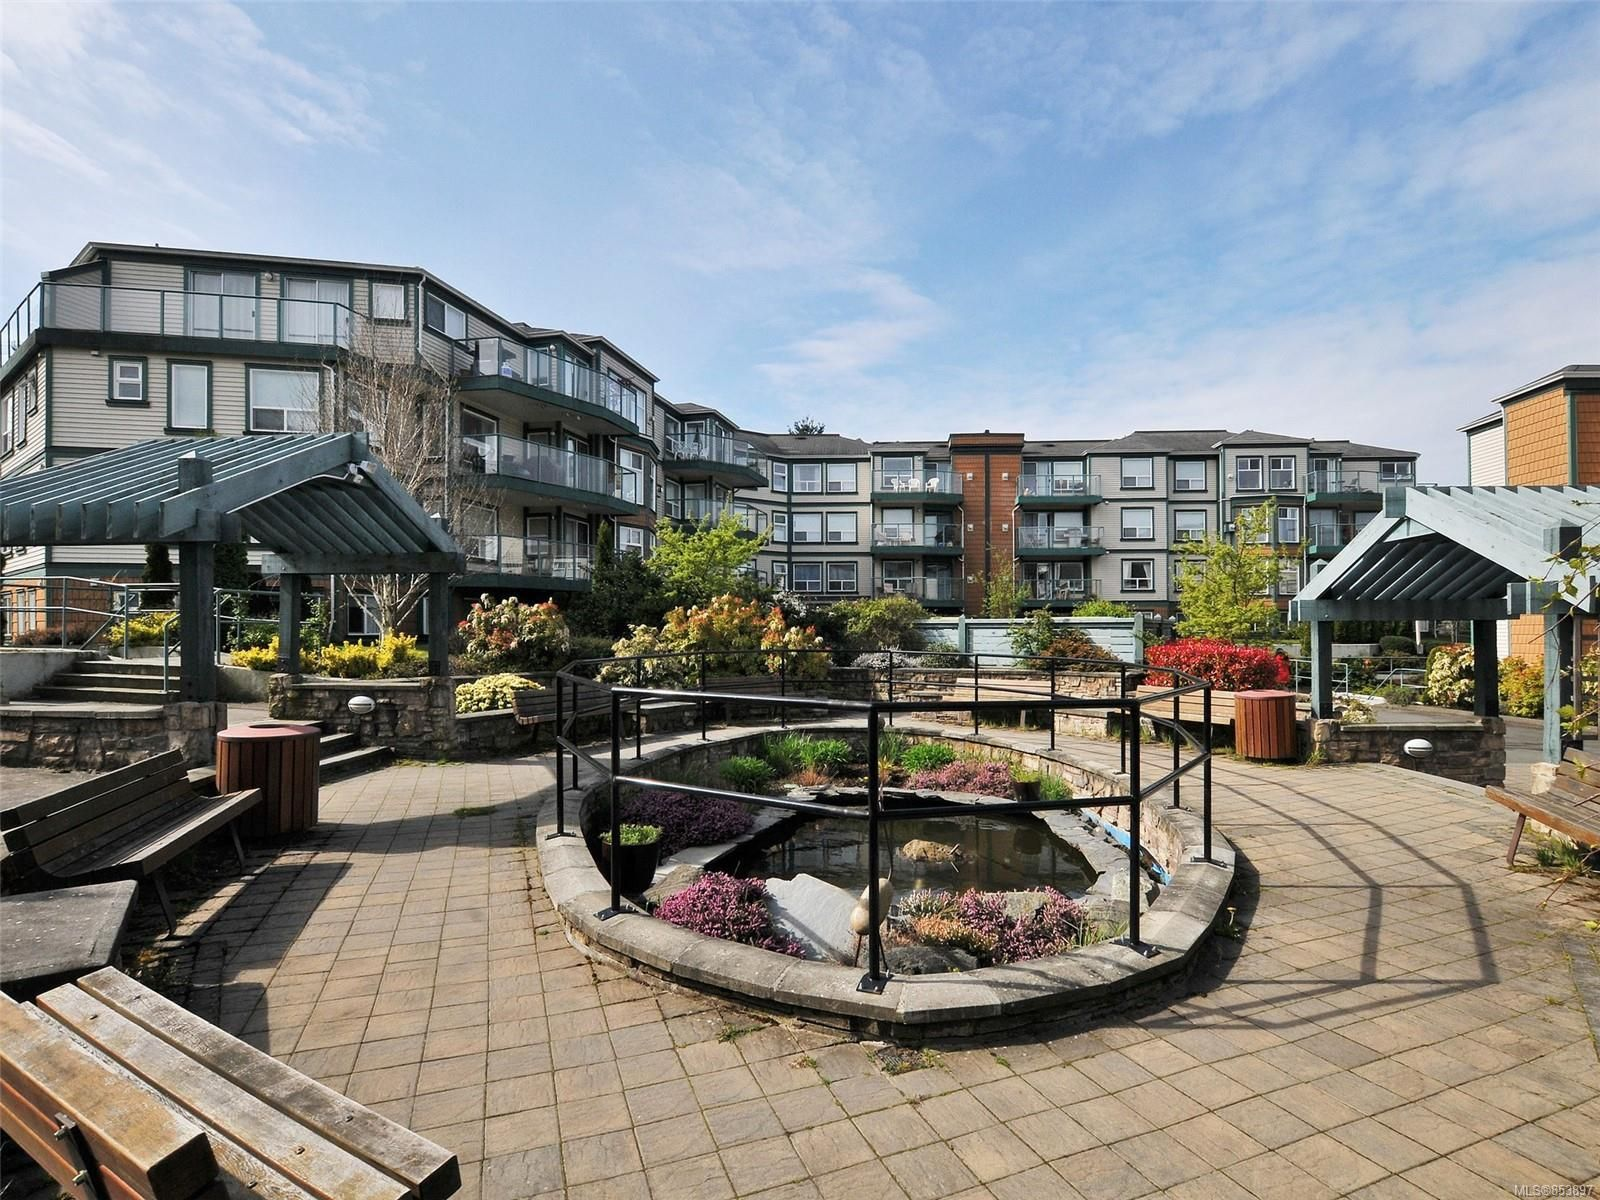 Main Photo: 302 898 Vernon Ave in Saanich: SE Swan Lake Condo for sale (Saanich East)  : MLS®# 853897